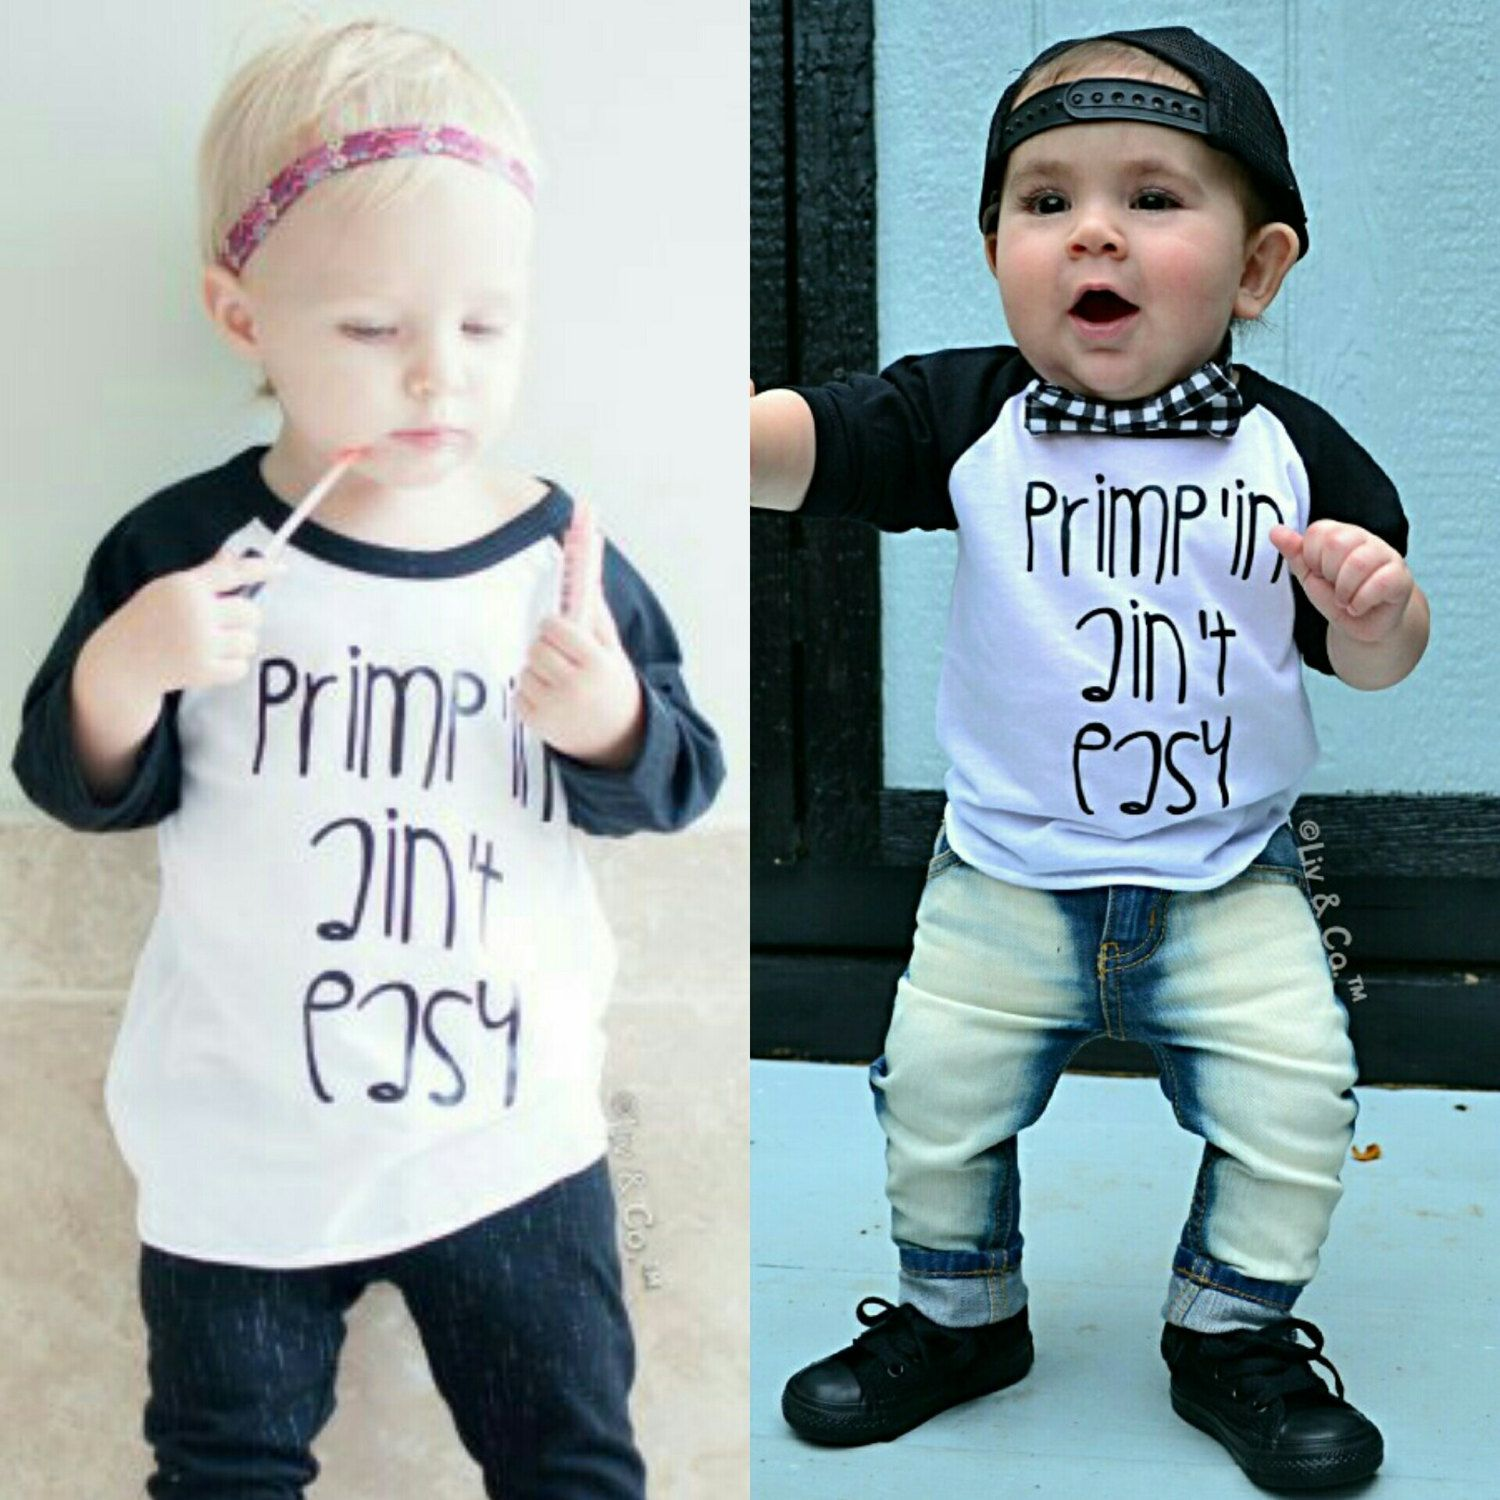 Primp'in Ain't Easy for girls👠💄 or boys 👔🎩 Snag this fab raglan in our shop! #Etsy #LivAndCo #Handmade